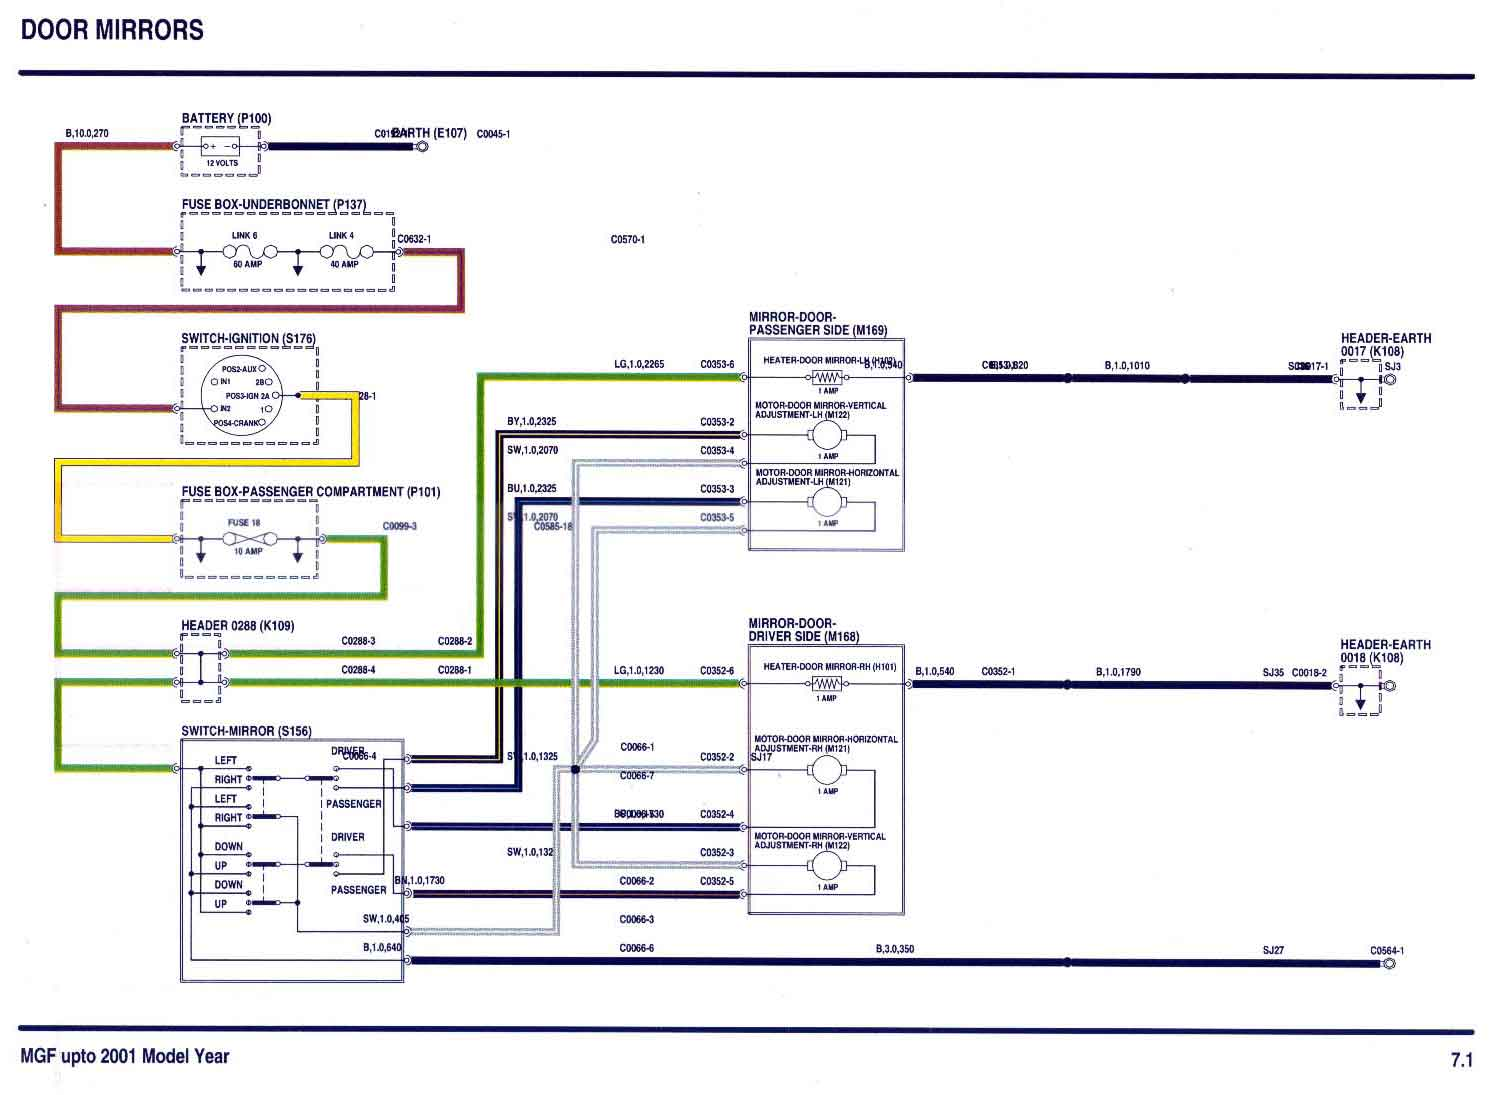 hight resolution of mgf up to 2001 my electrical circuit diagrams wiring diagram for youelectrical circuits mgf up to